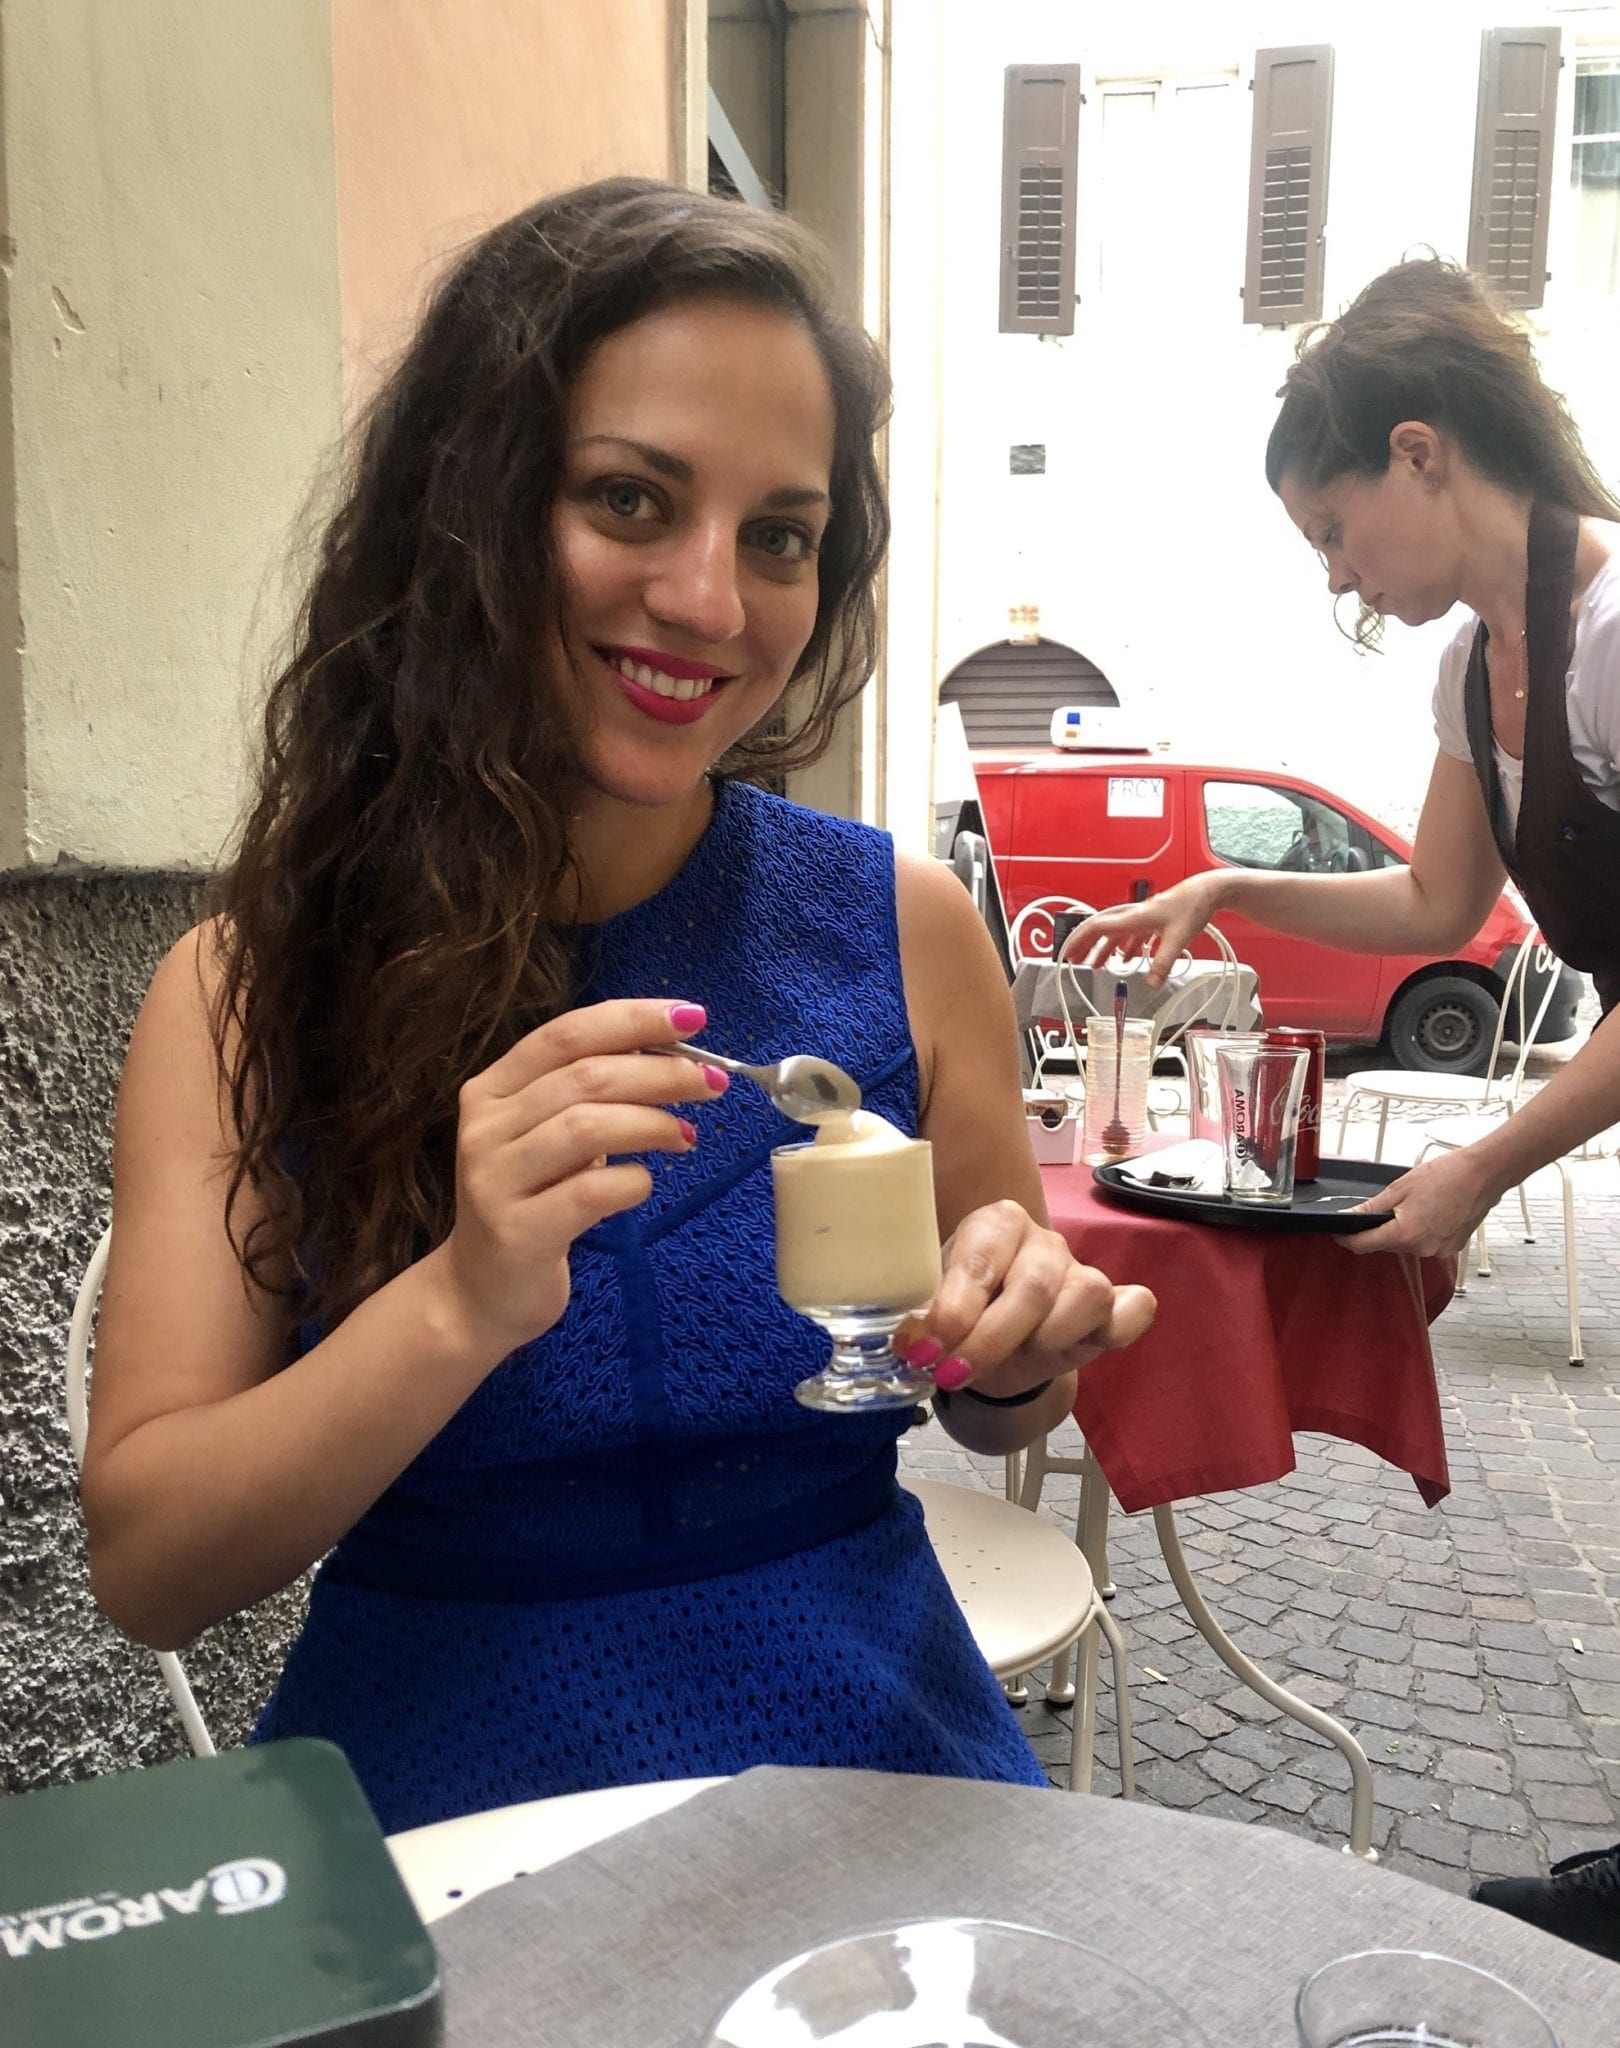 Kate wears a royal blue Pinko dress that goes up to her neck and has a transparent lacy fabric. Her hair is down a curly and she holds a cafe crema (soft serve espresso) in her hand. She is sitting at a sidewalk cafe in Trento.